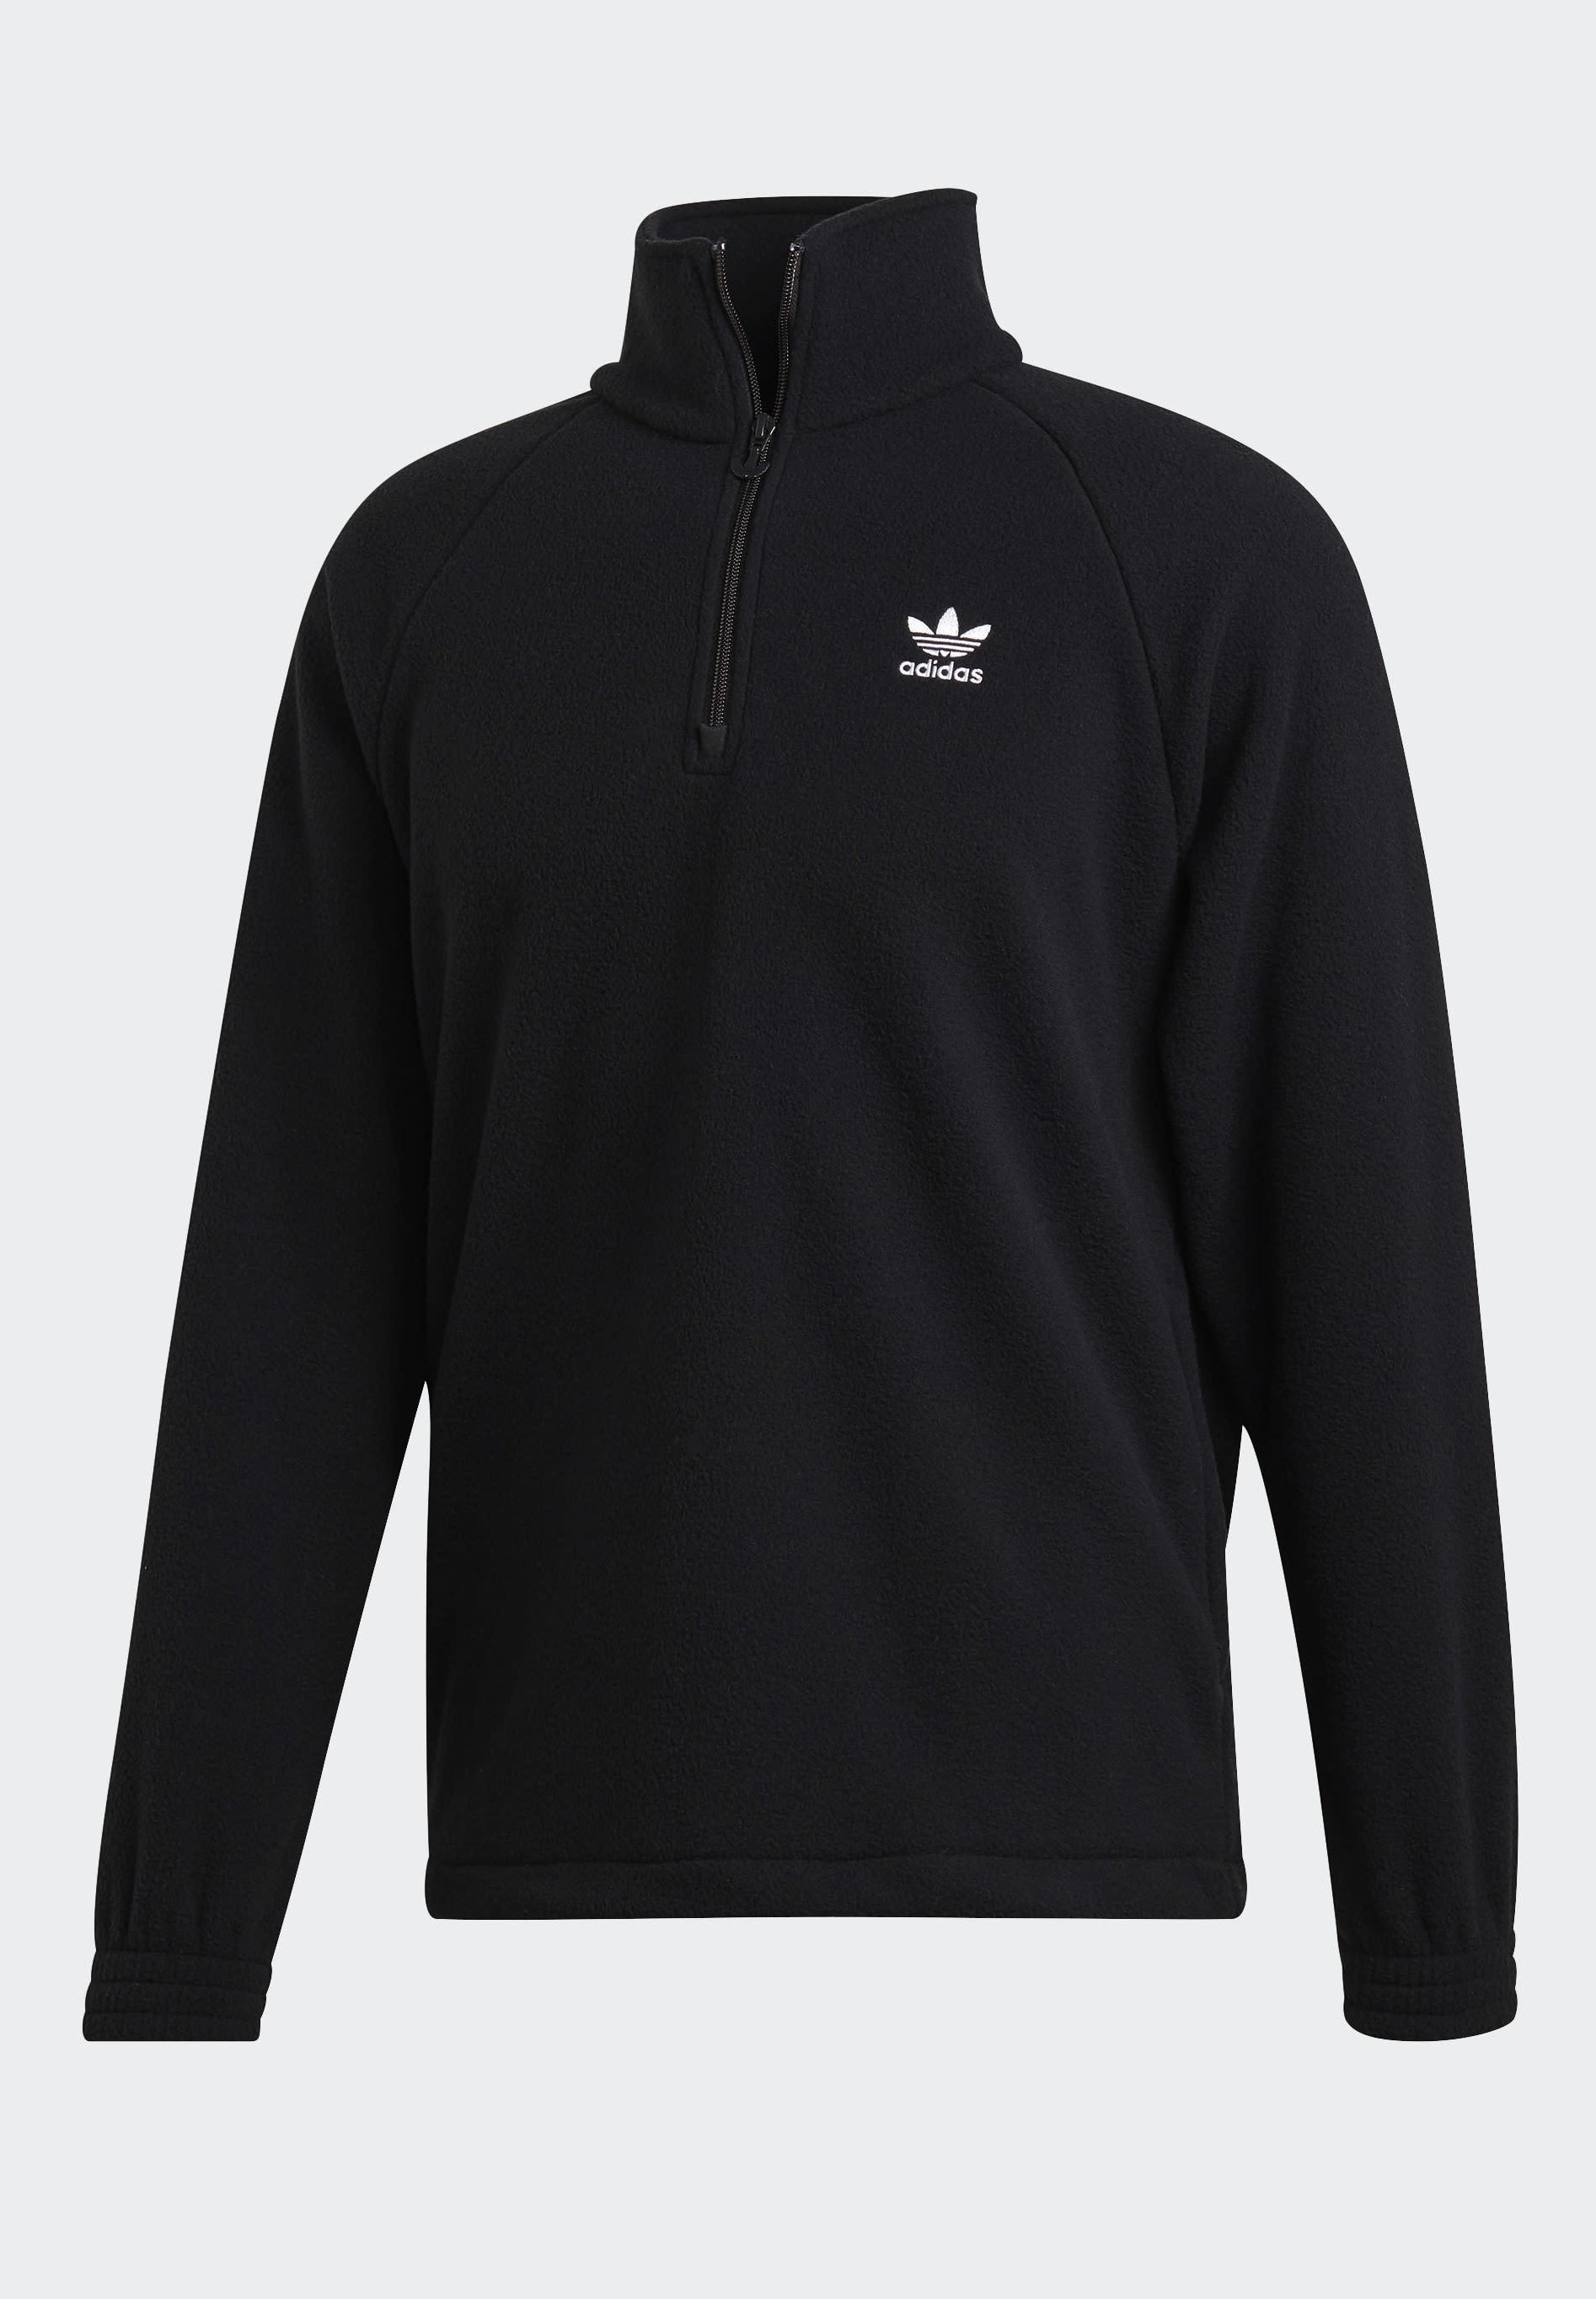 Adidas Originals Adicolor Polar Fleece Half-zip Sweatshirt - Kurtka Sportowa Black